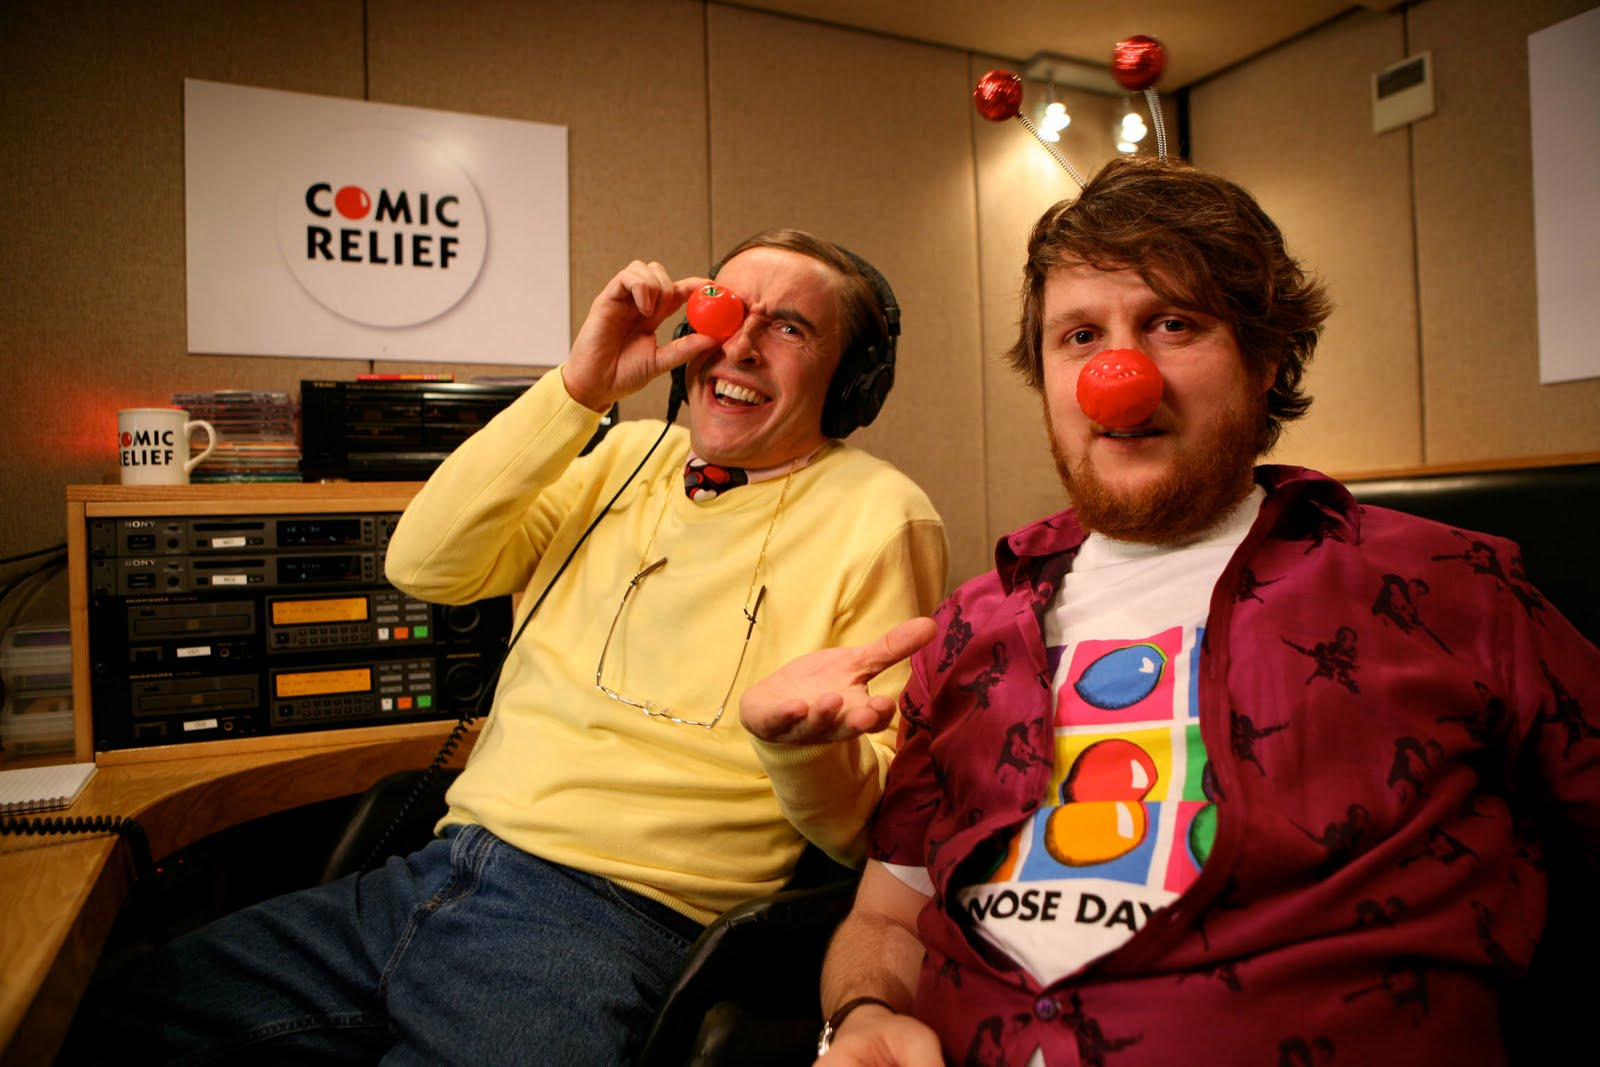 http://4.bp.blogspot.com/-atnelShYND0/TYJyEms9DHI/AAAAAAAAAUk/ZDnz4x3XAAk/s1600/steve-coogan-as-alan-partridge-red-nose-day-2011-comic-relief.jpg